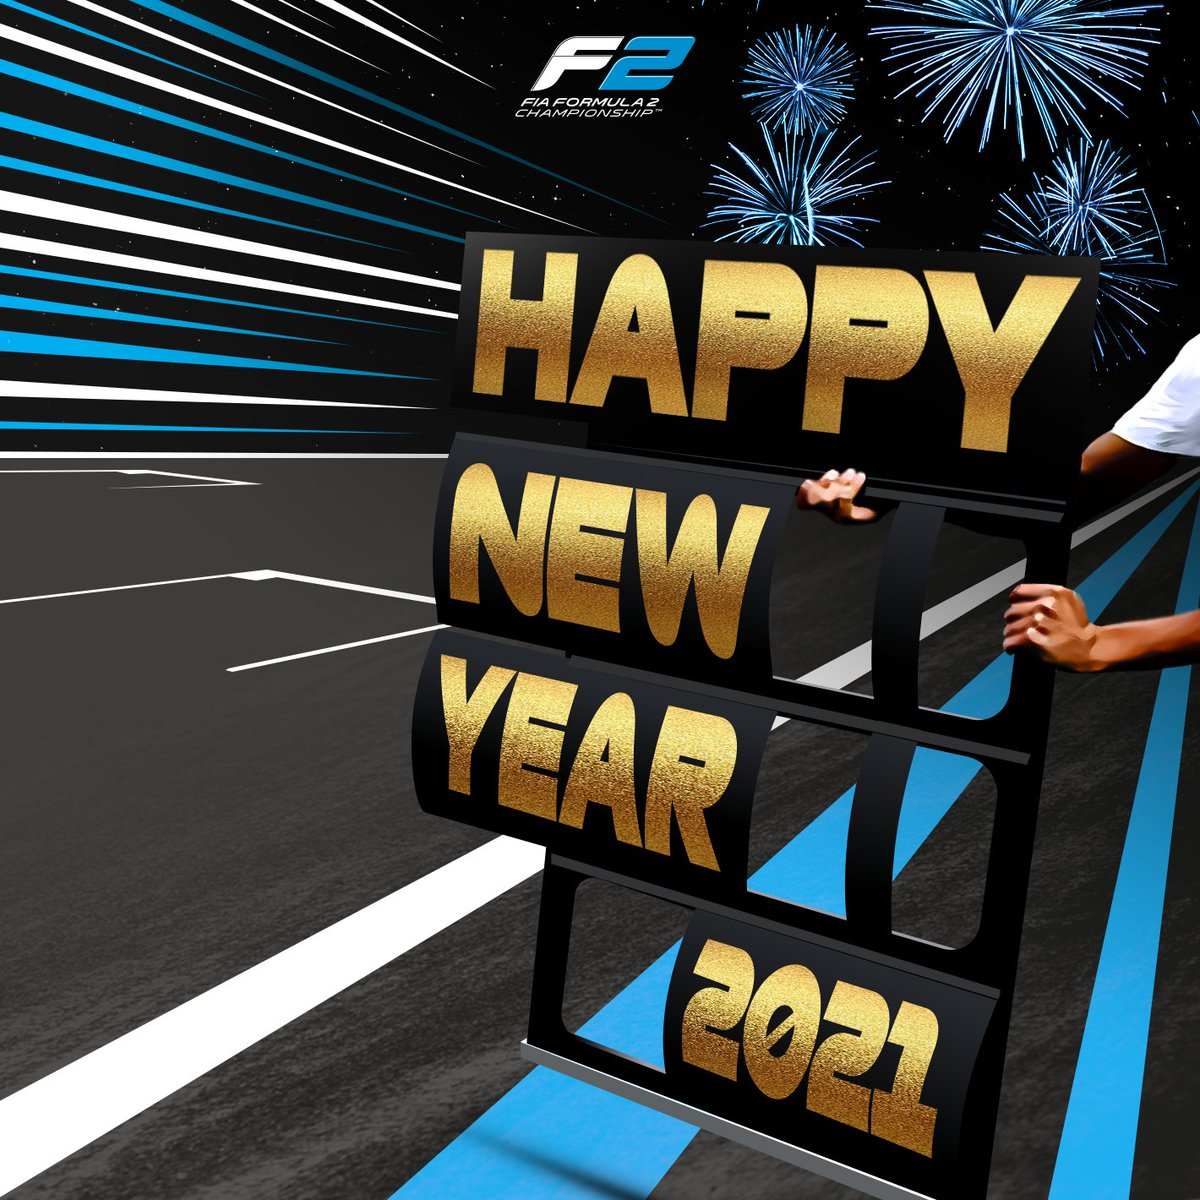 Here's to 2021 🥂  #F2 #HappyNewYear